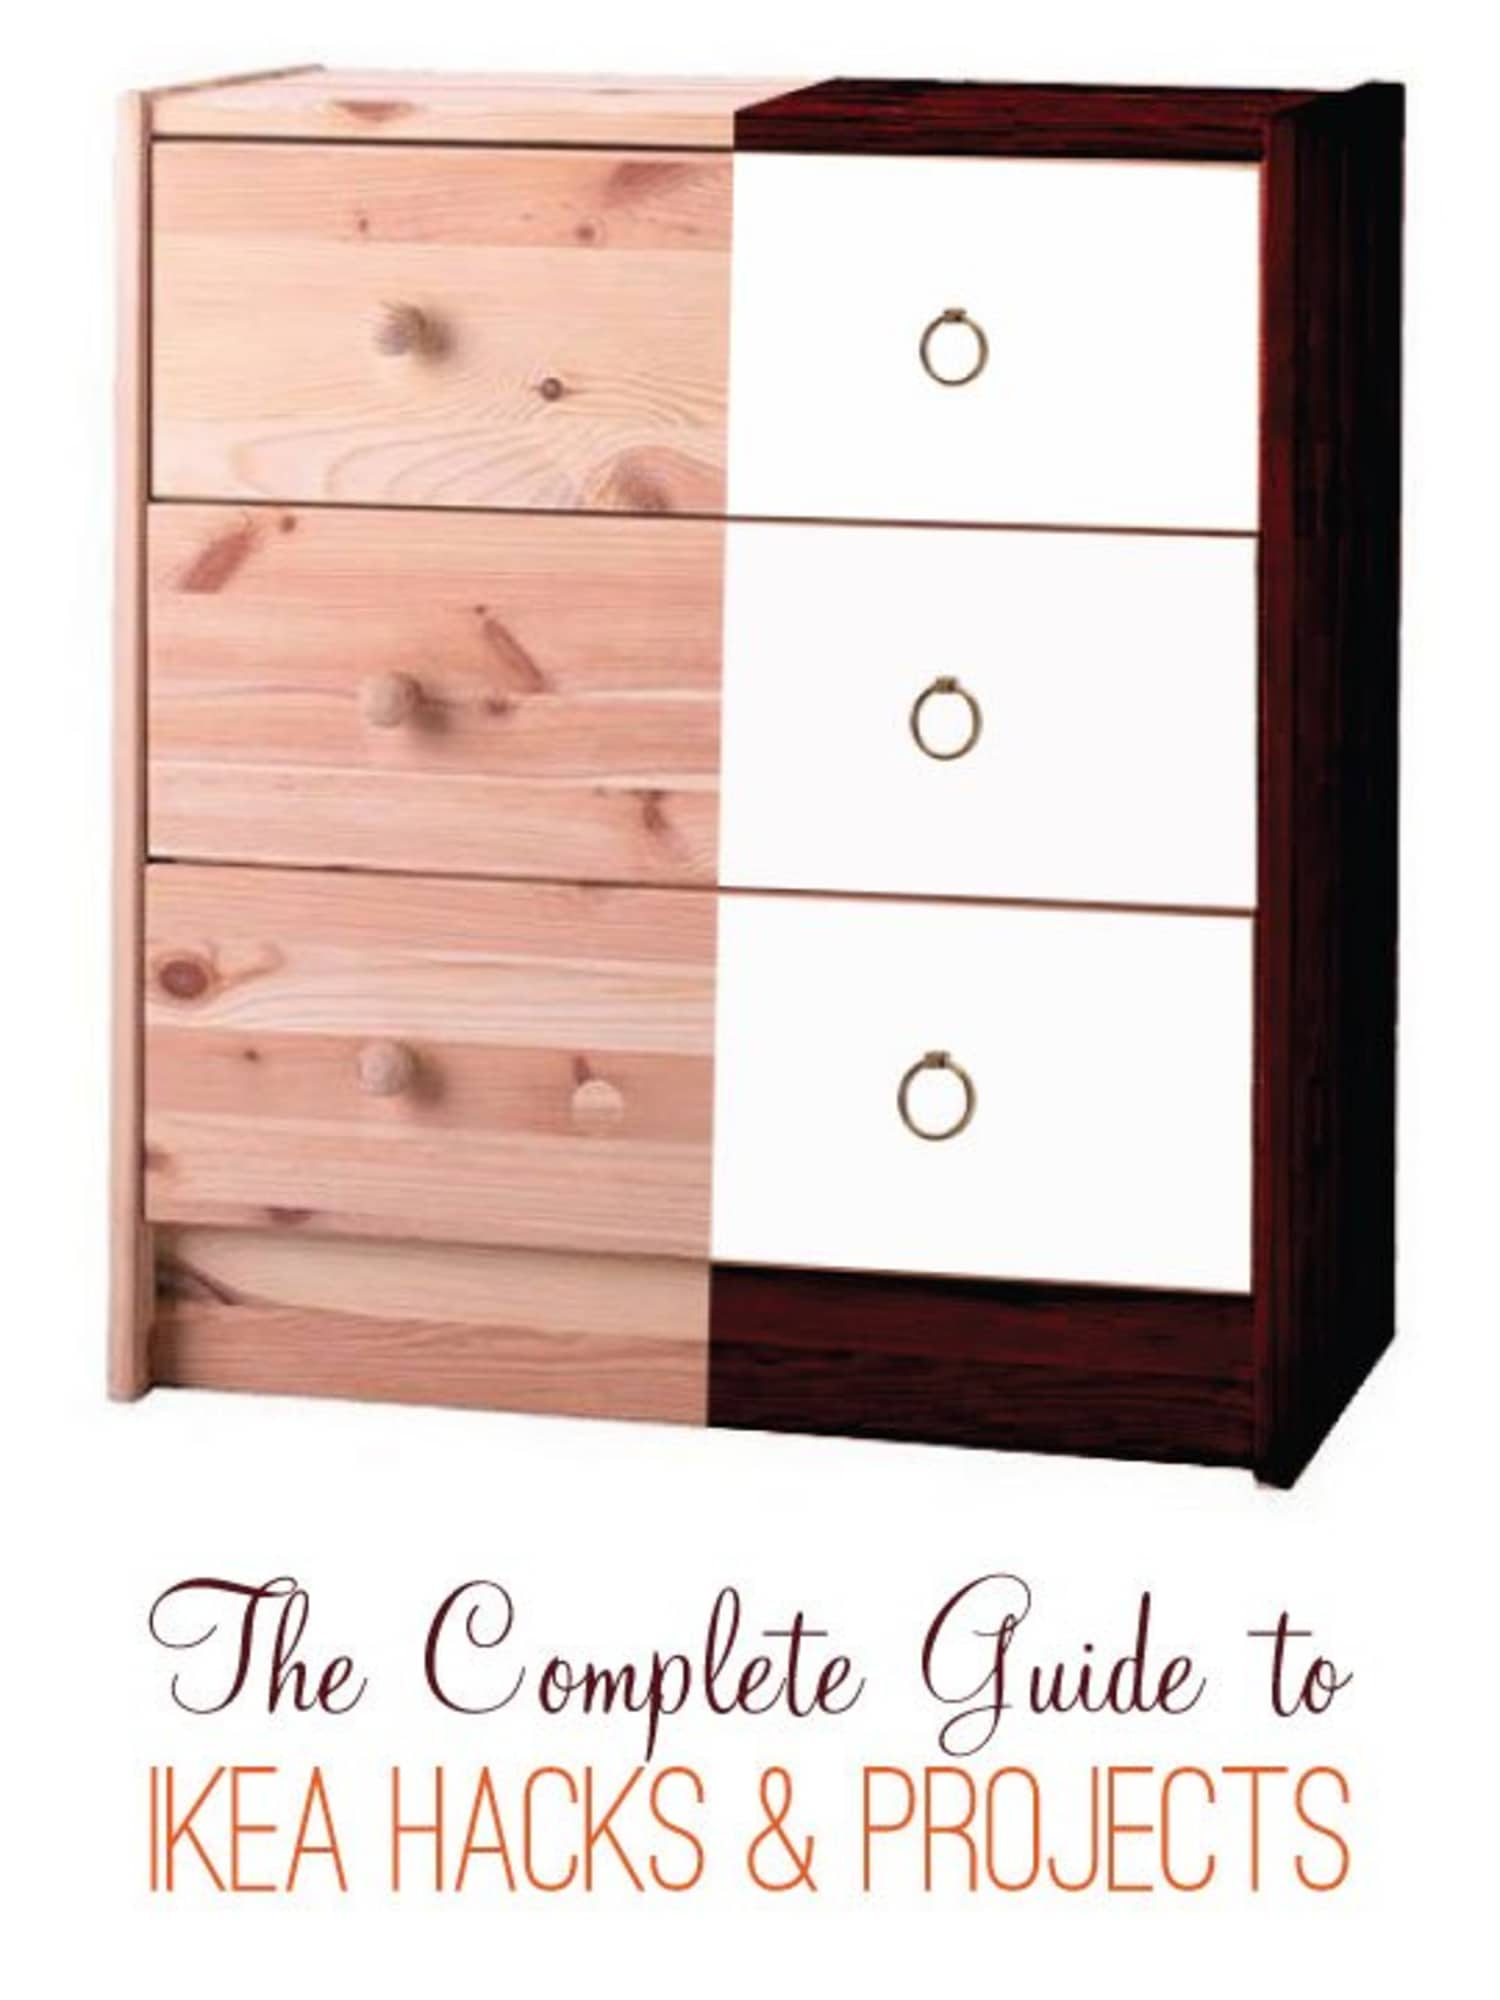 Make It Work: The Complete Guide to IKEA Hacks & Projects